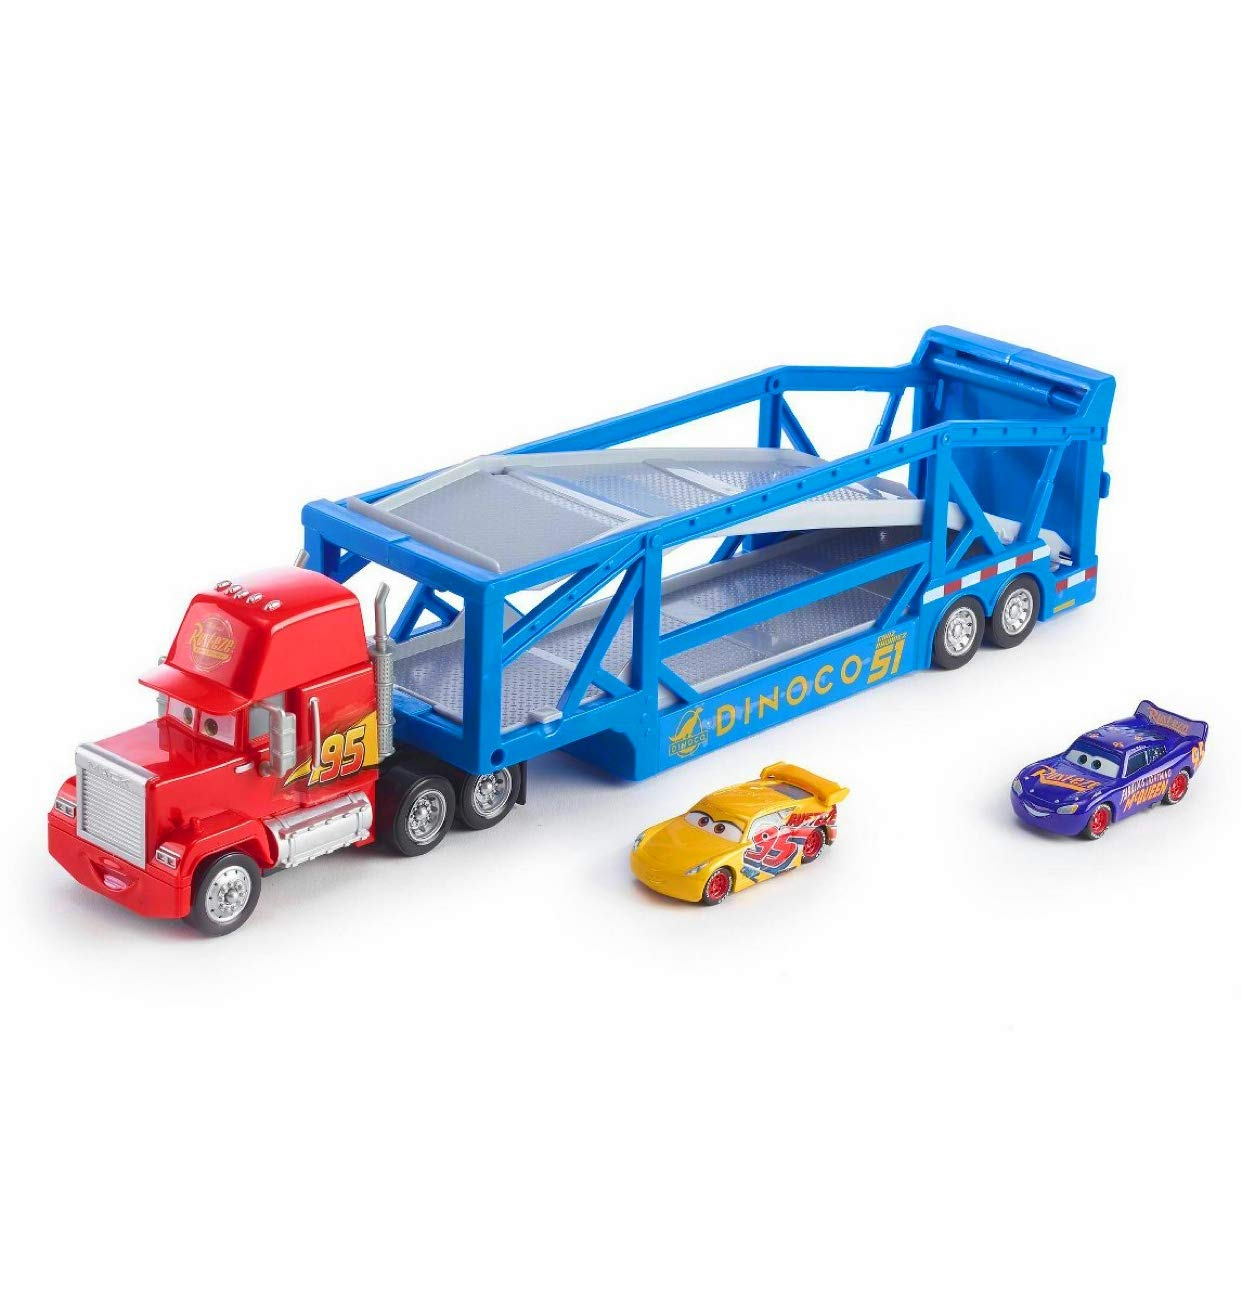 CARS MACK PORTA COCHES + 2 COCHES EXC TOYESP GKR37